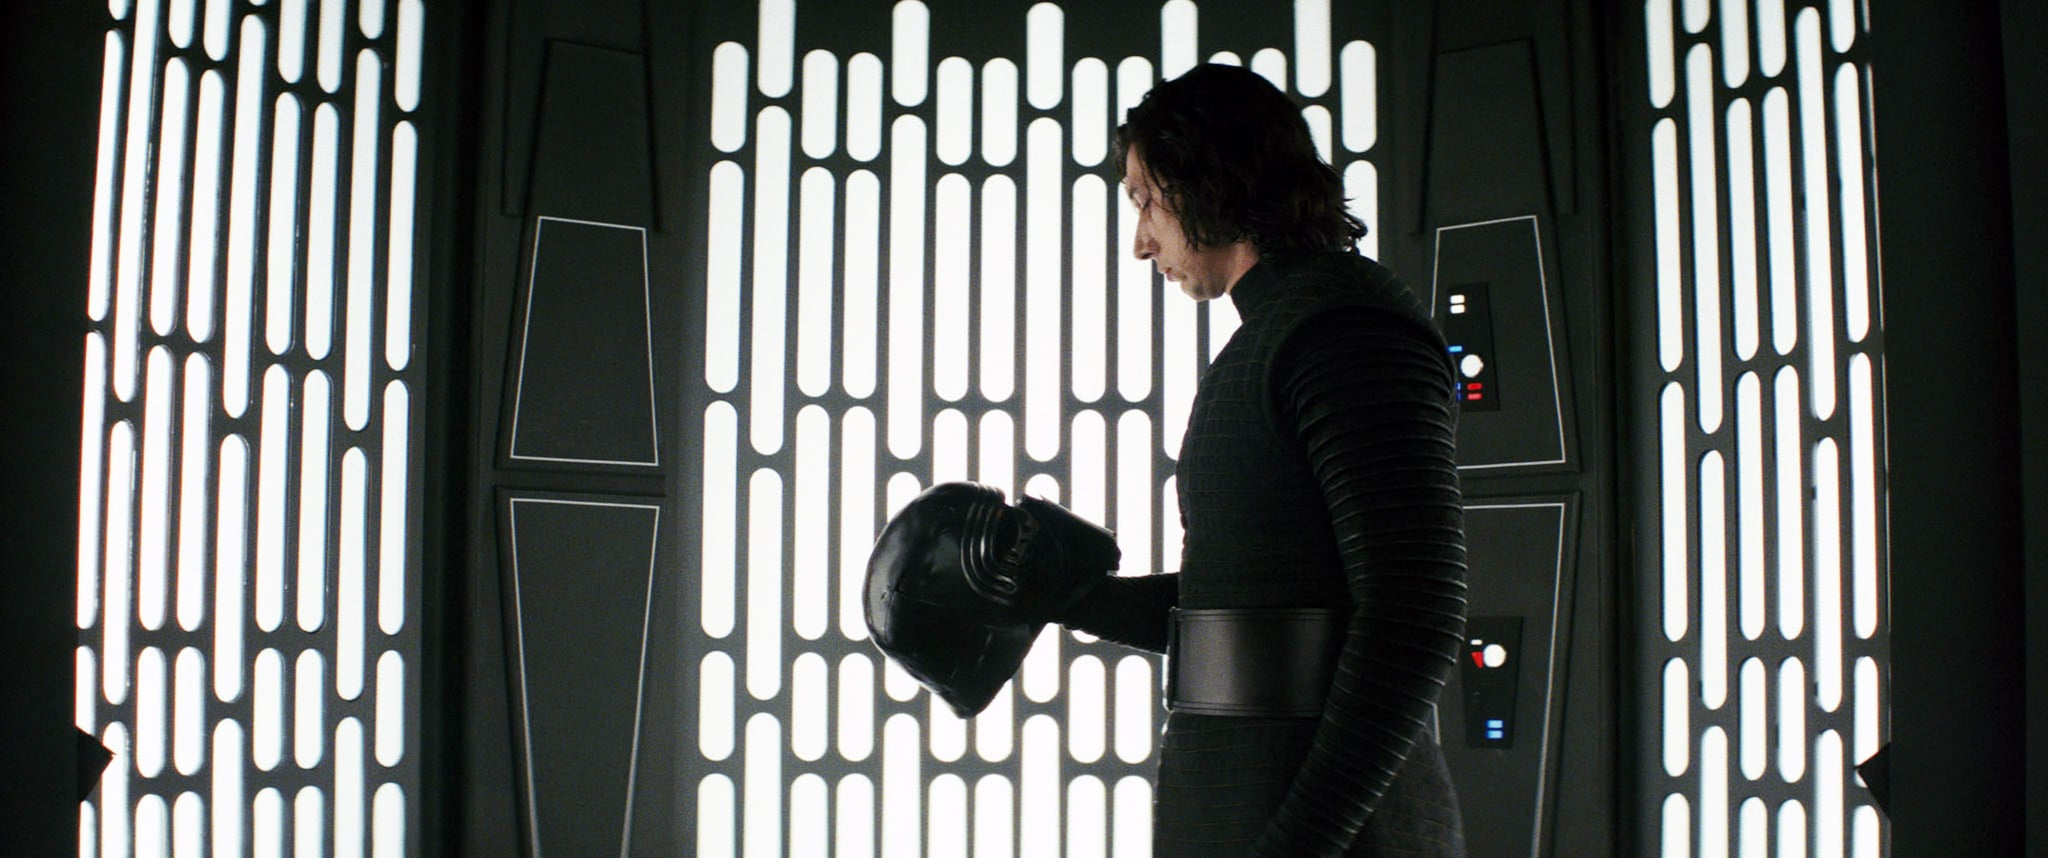 Kylo Ren From Star Wars The Rise Of Skywalker From The Schuyler Sisters To Schitt S Creek Here Are 2020 S Hottest Halloween Costume Ideas Popsugar Entertainment Photo 68